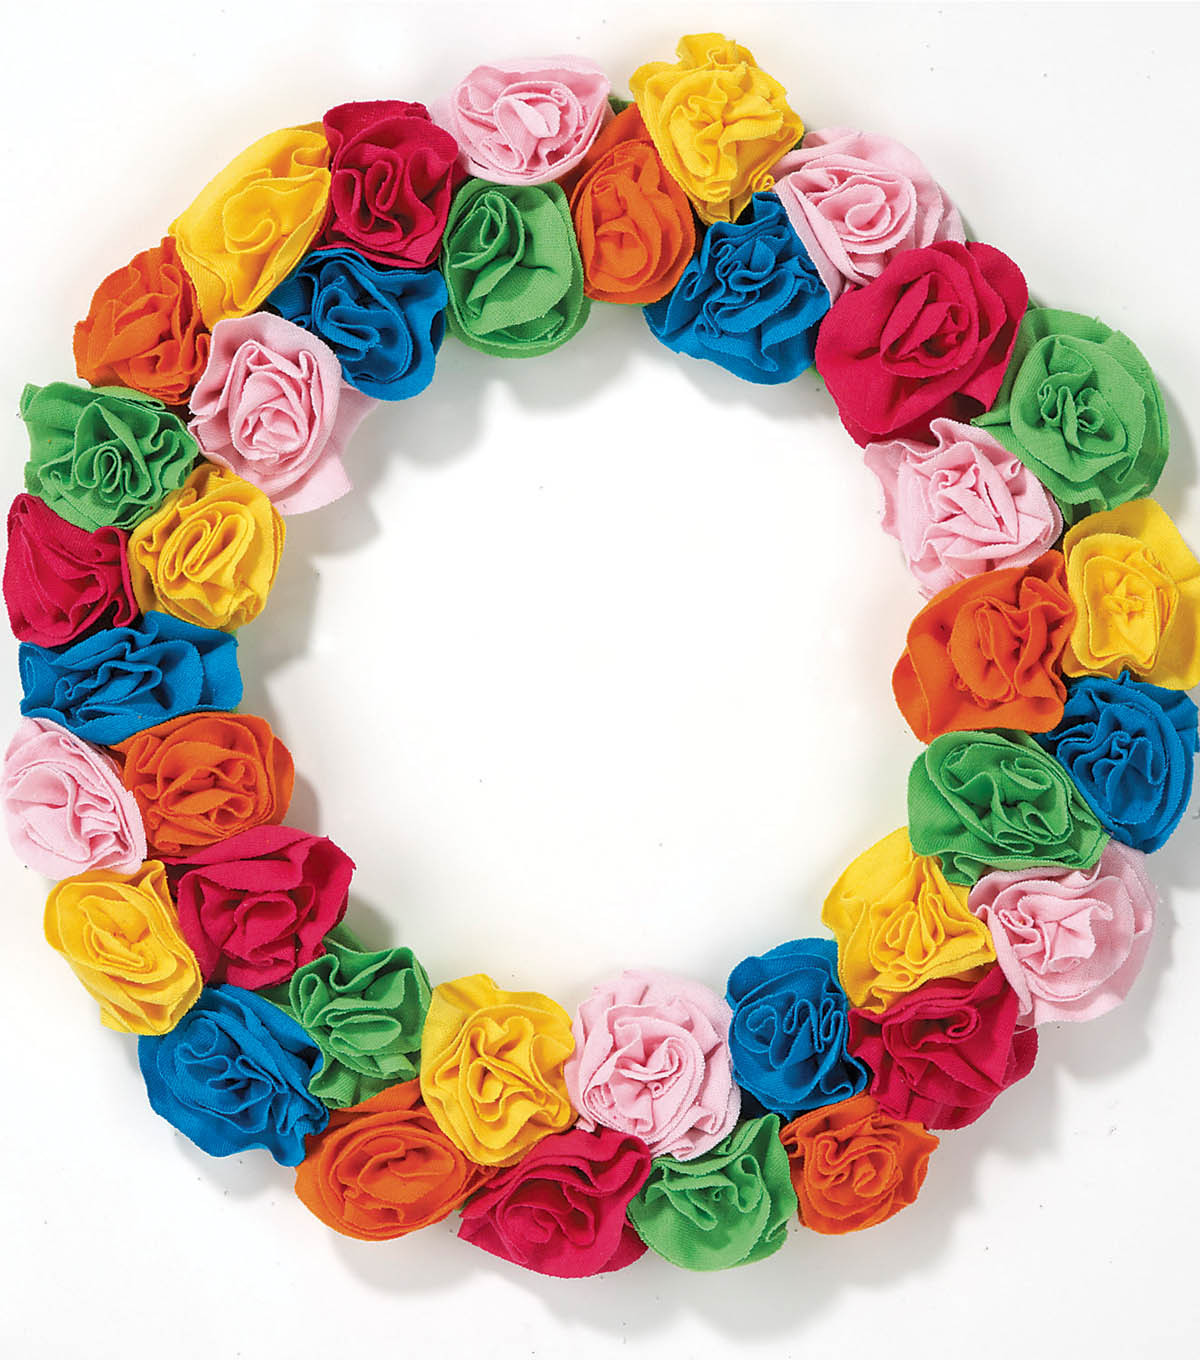 T-Shirt Flower Wreath